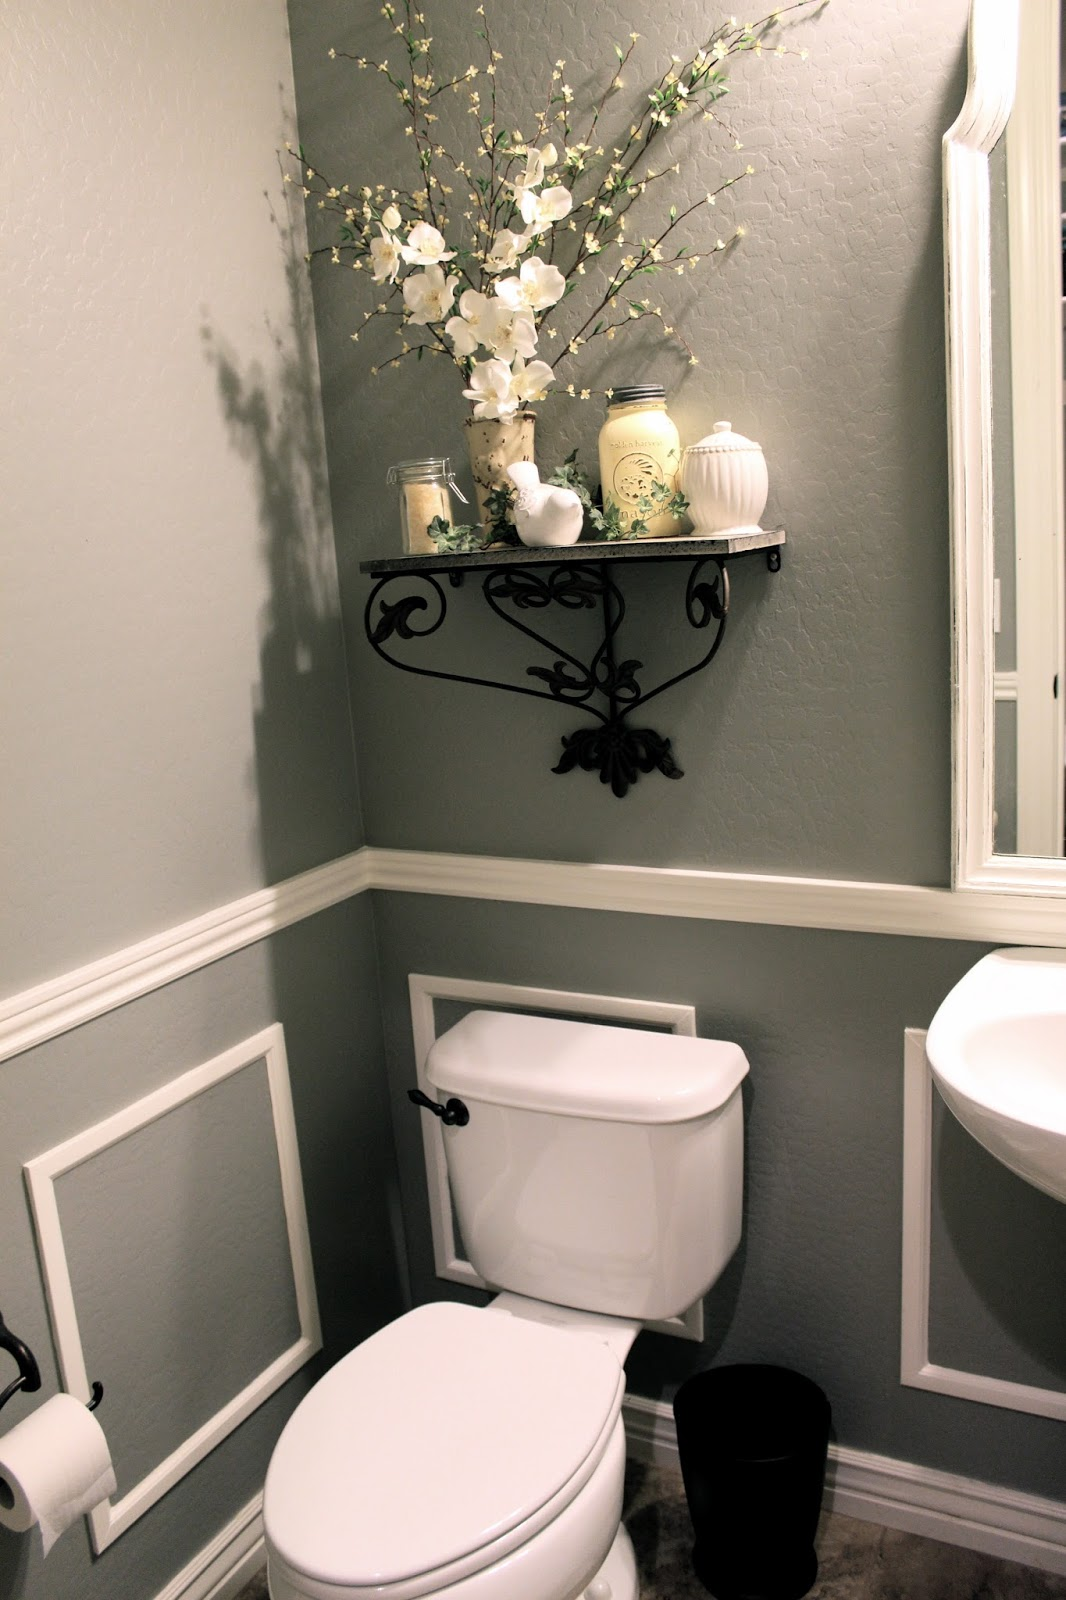 Guest Bathroom Design Ideas Little Bit Of Paint Thrifty Thursday Bathroom Reveal